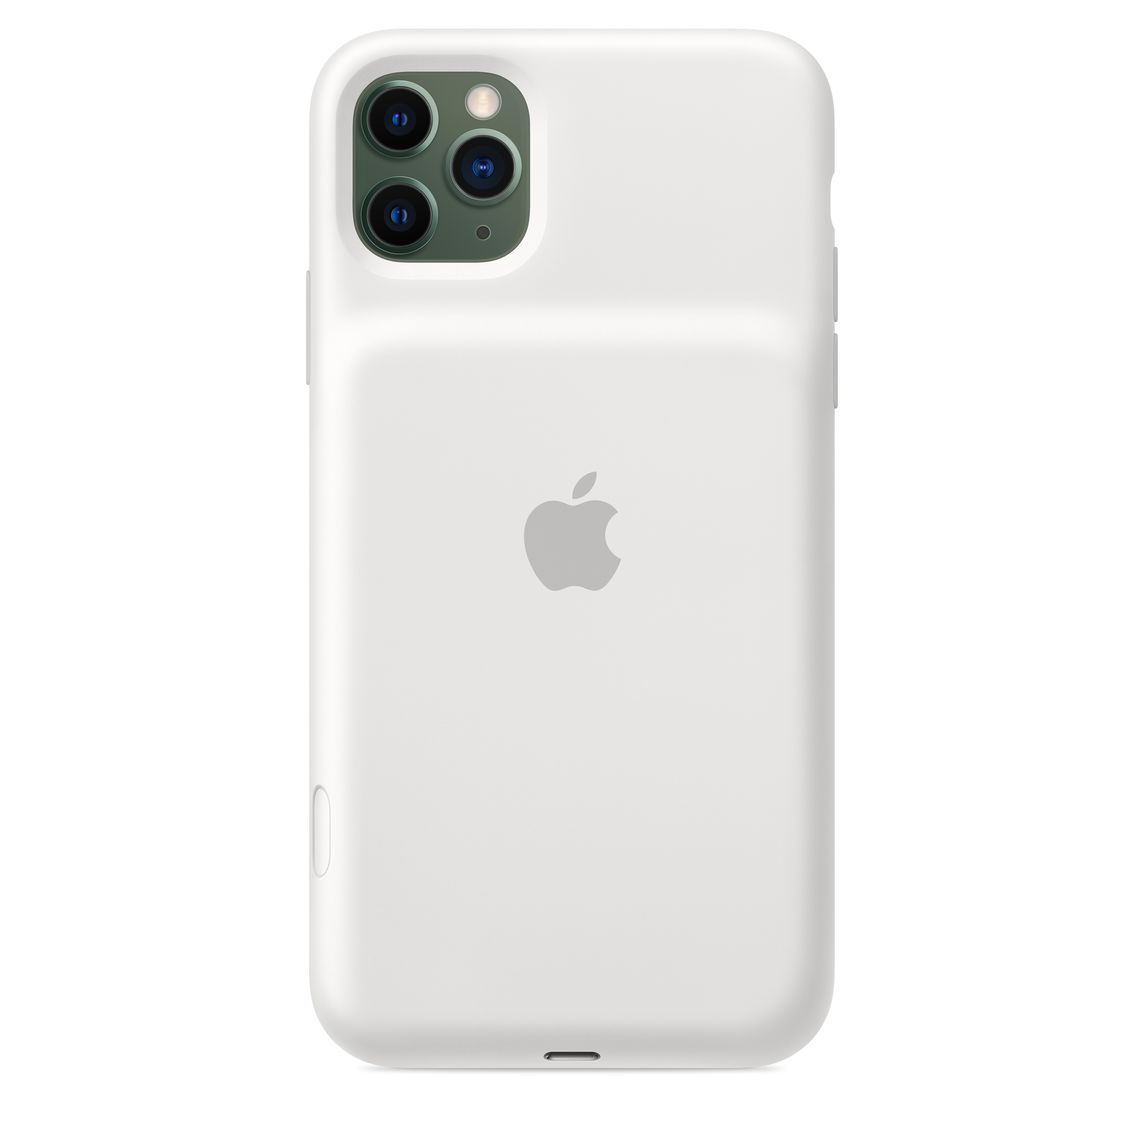 Iphone 11 Pro Max Smart Battery Case White Apple